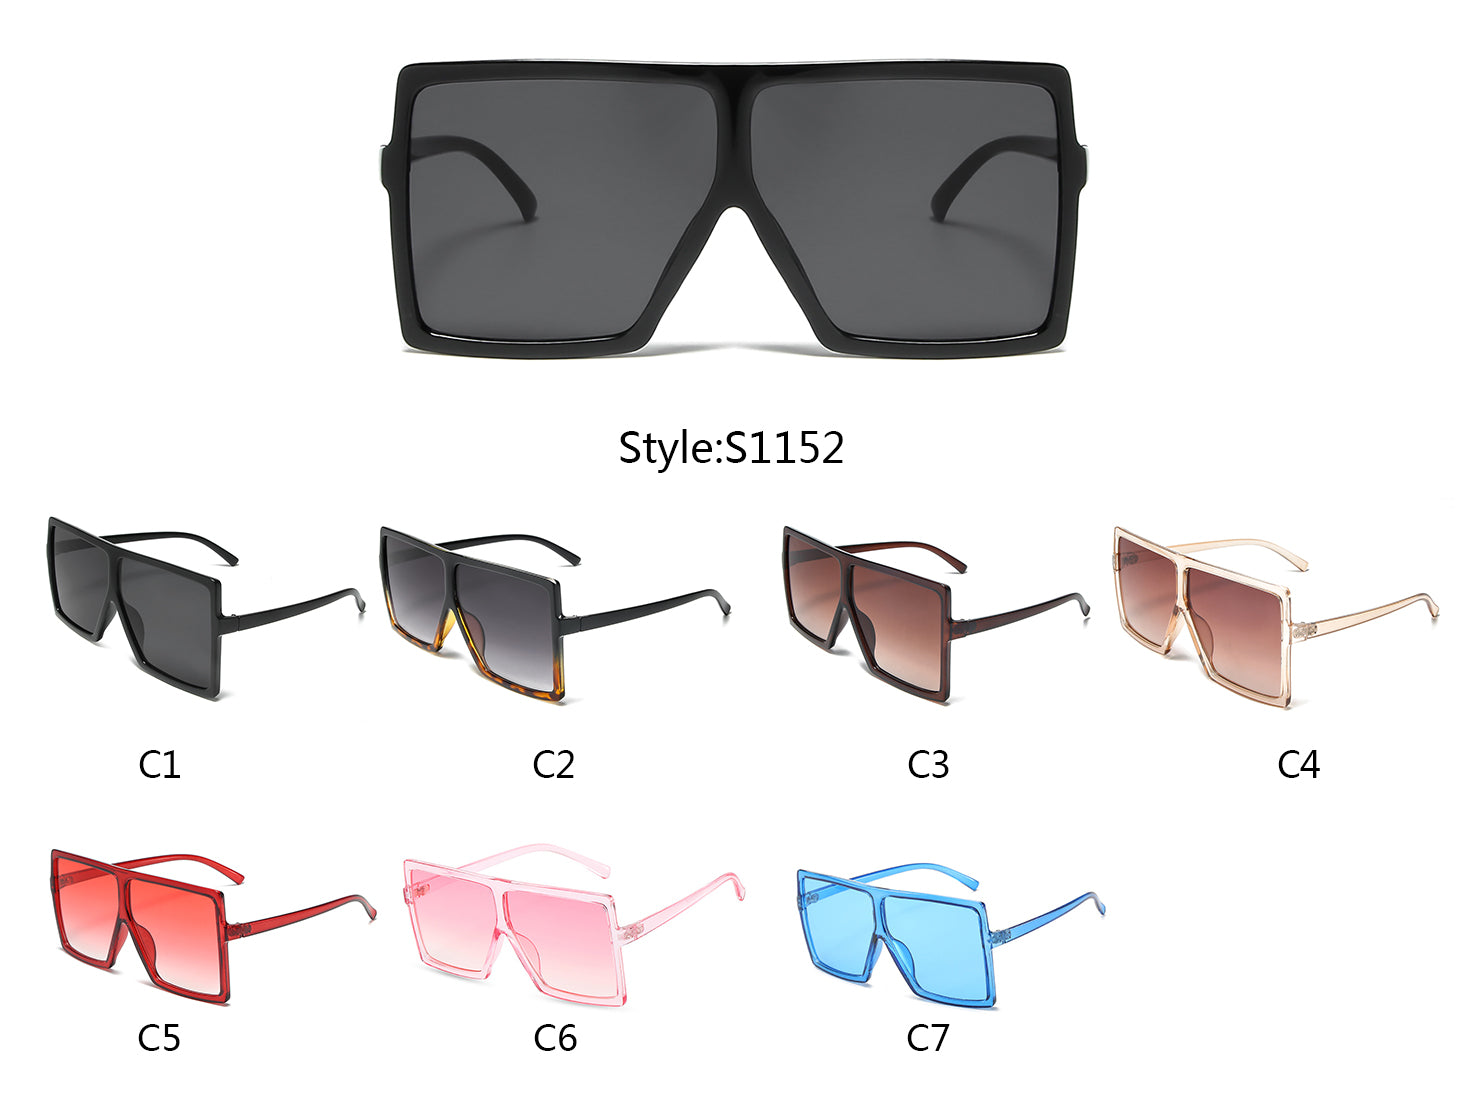 S1152- Flat Top Square Oversize Sunglasses